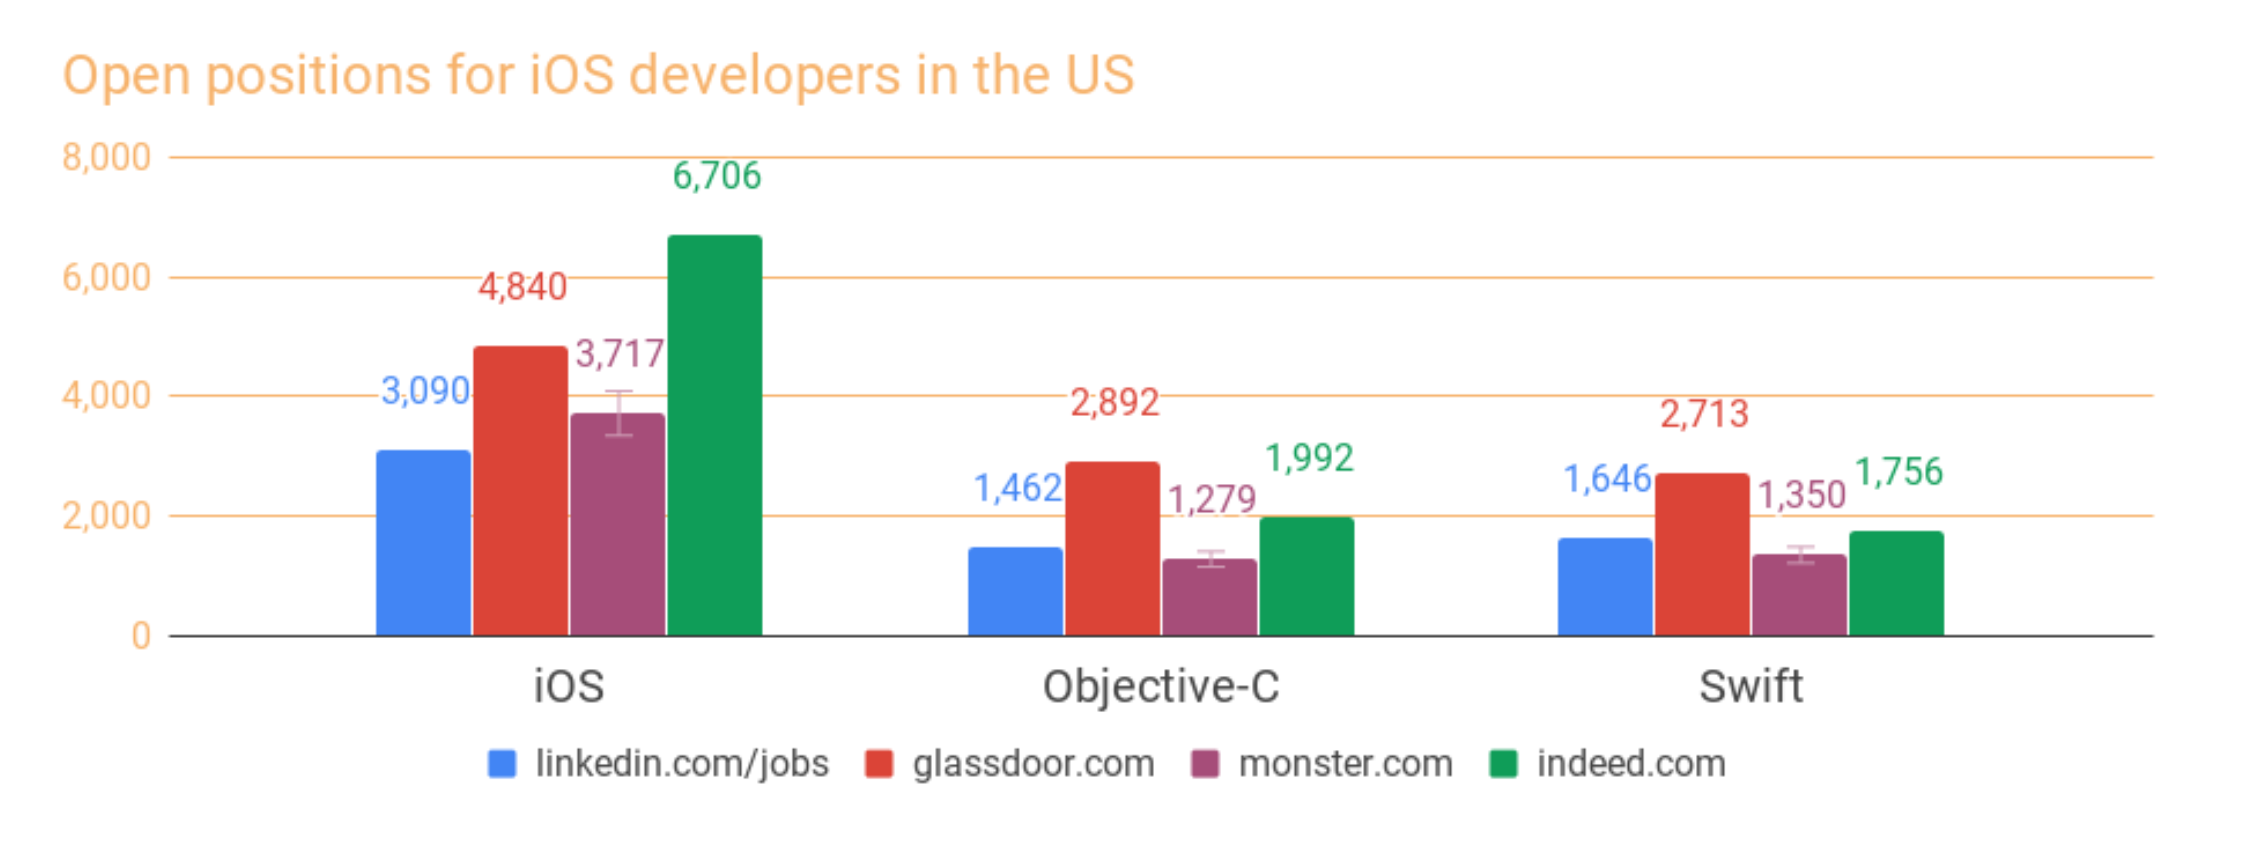 open positions for iOS developers